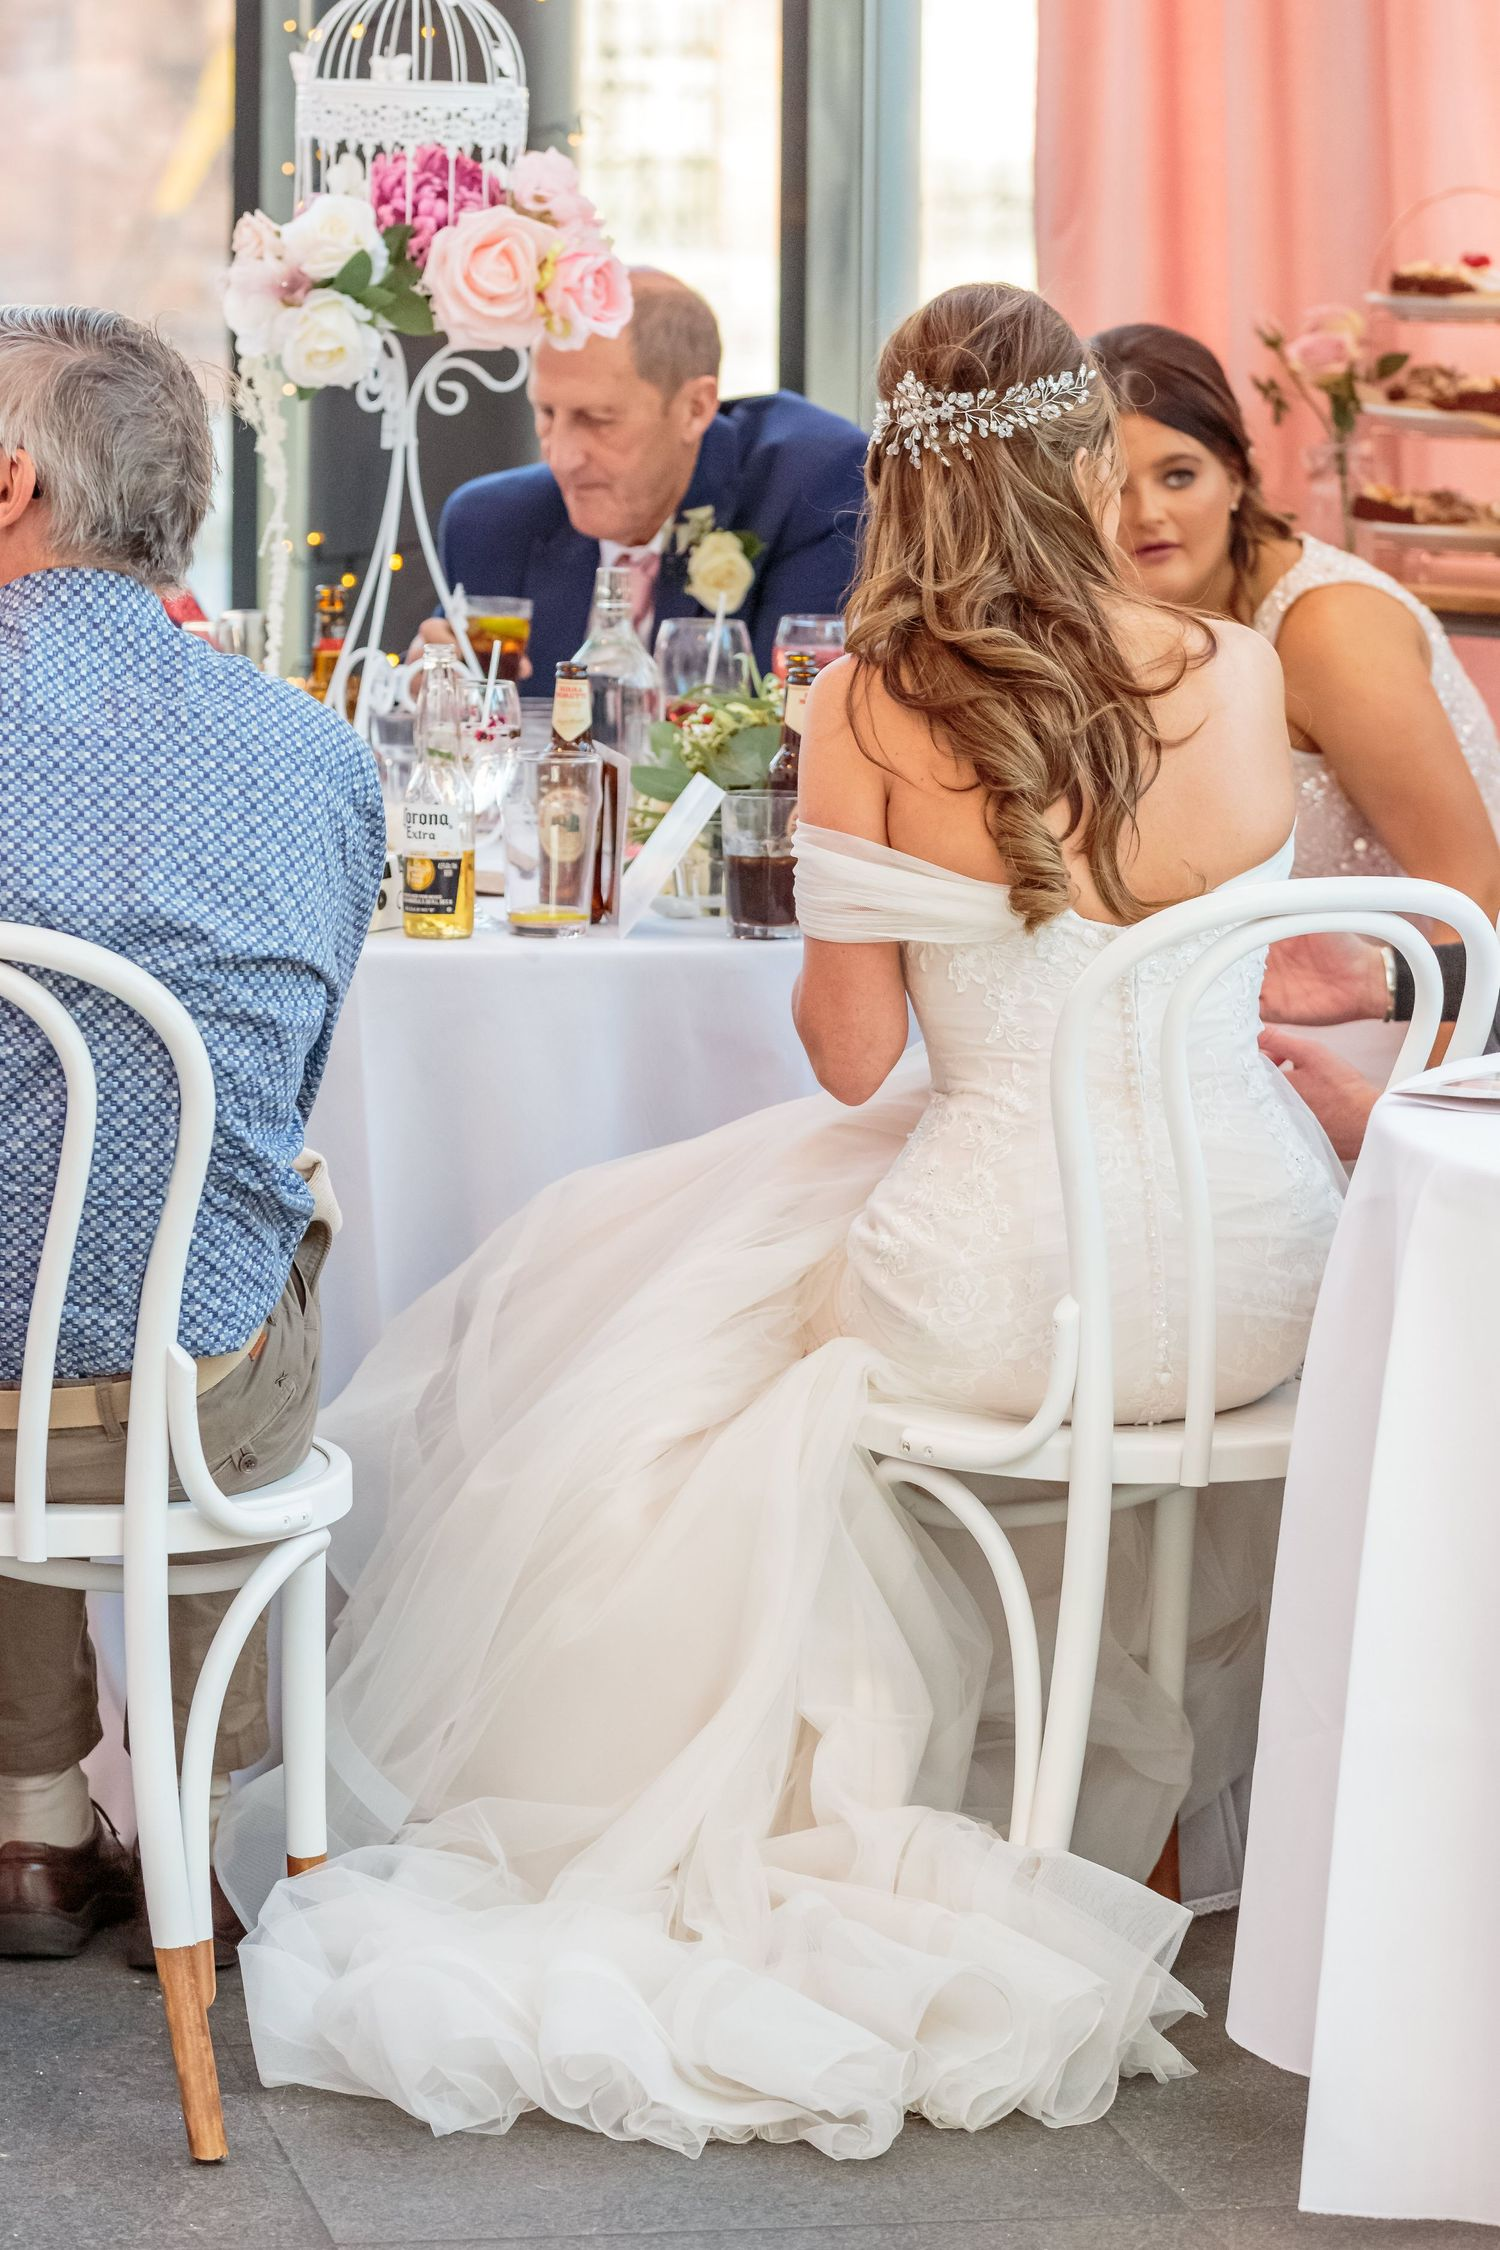 brides dress looks stunning from behind as she sits on an ornate metal chair in siren liverpool